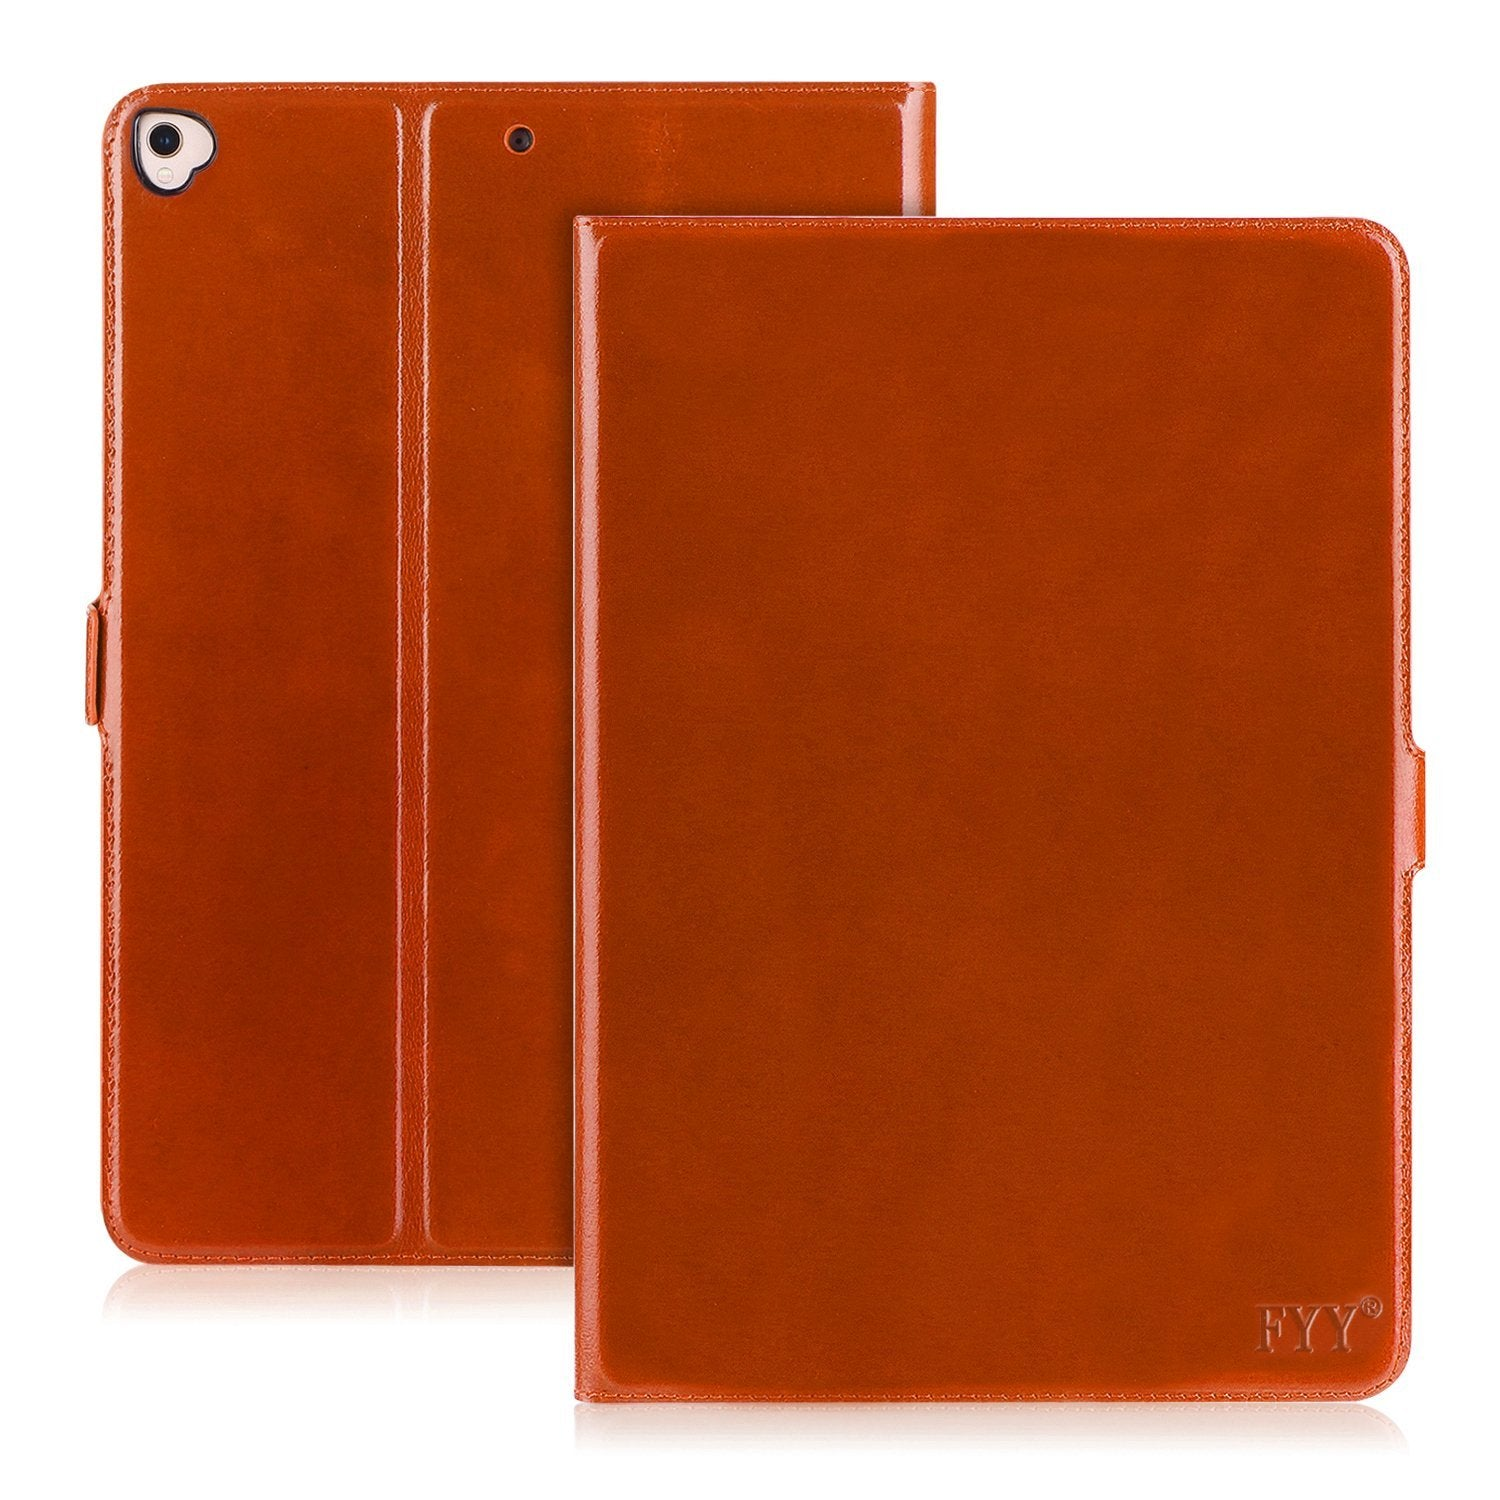 Handmade Genuine Leather Case for iPad Pro 12.9 (2017/2015)